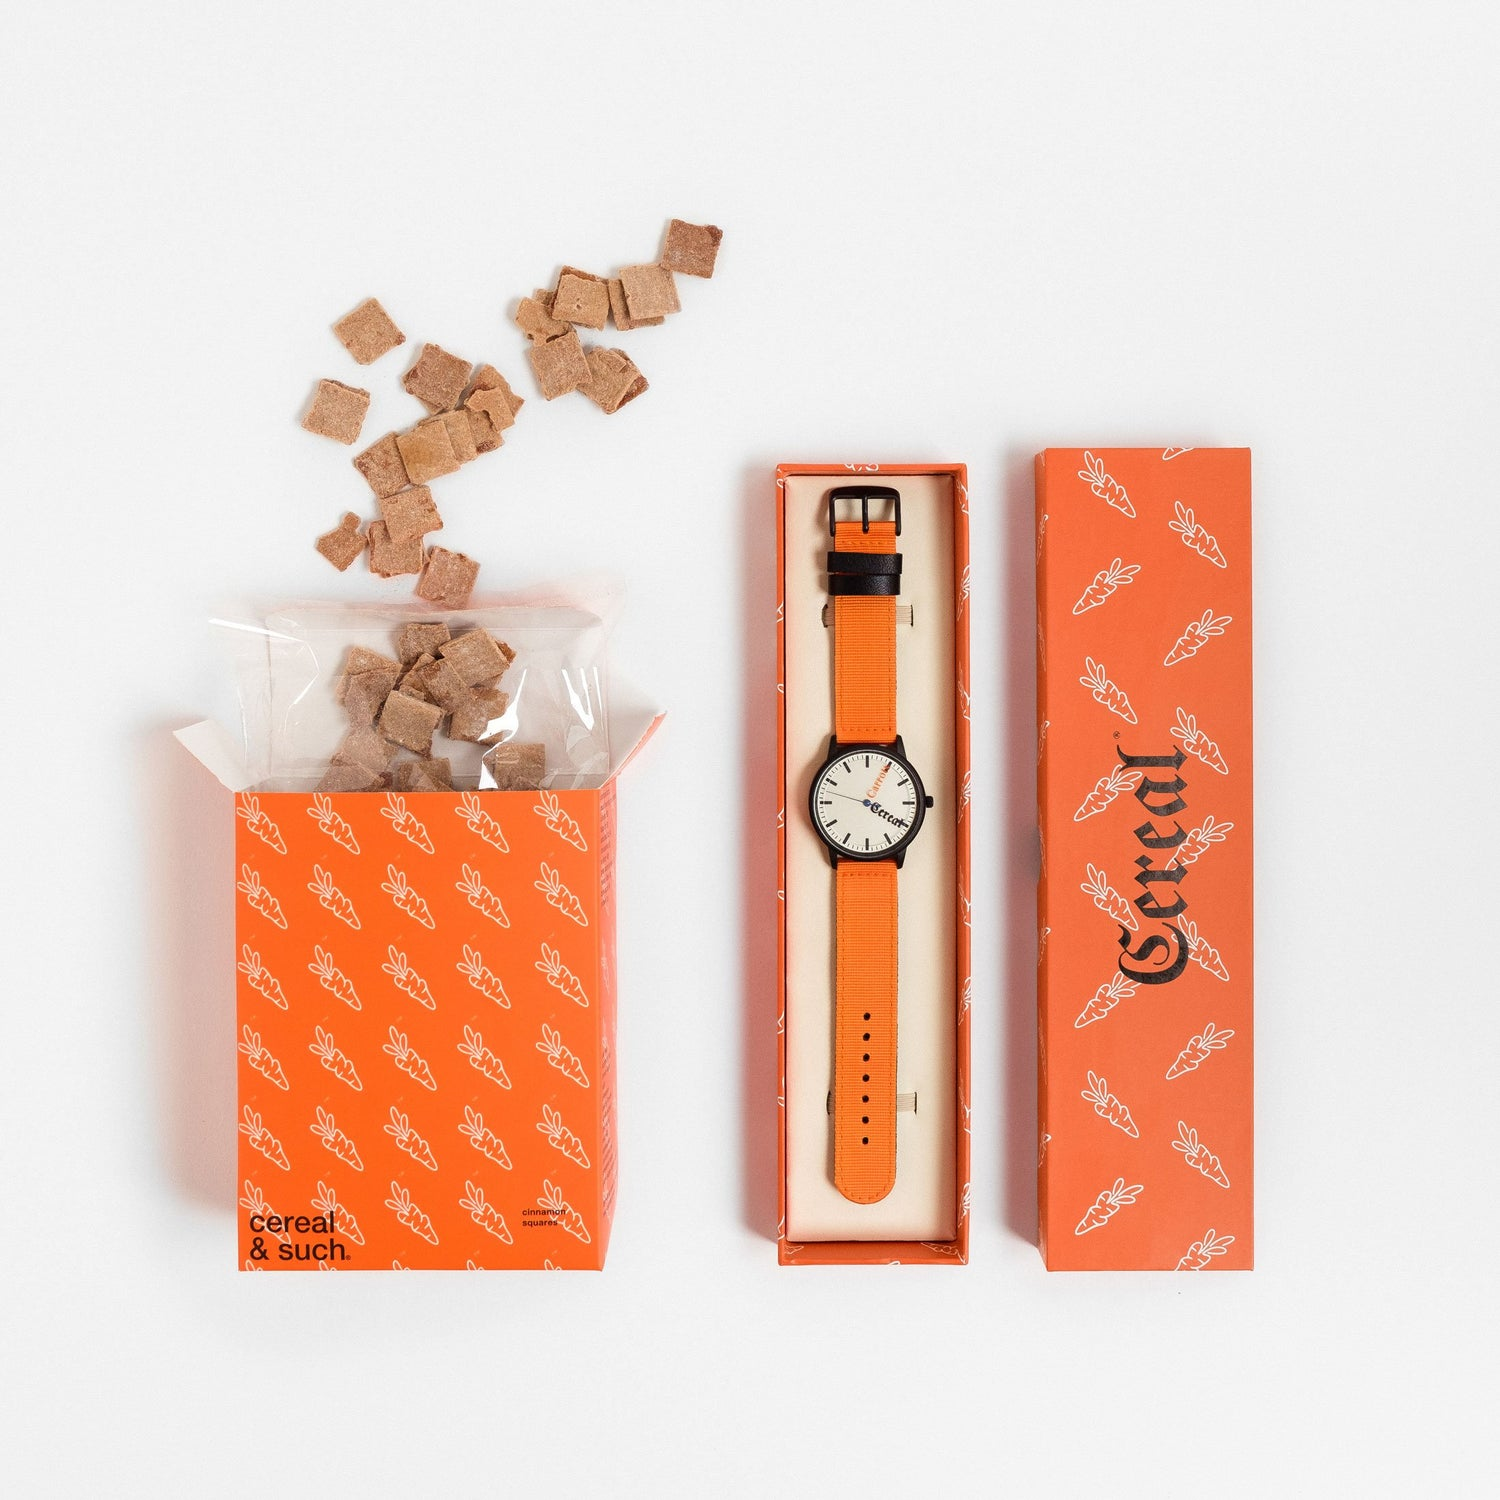 breda-cereal-carrots-bundle-valor-1707ct-b-black-orange-watch-box-1